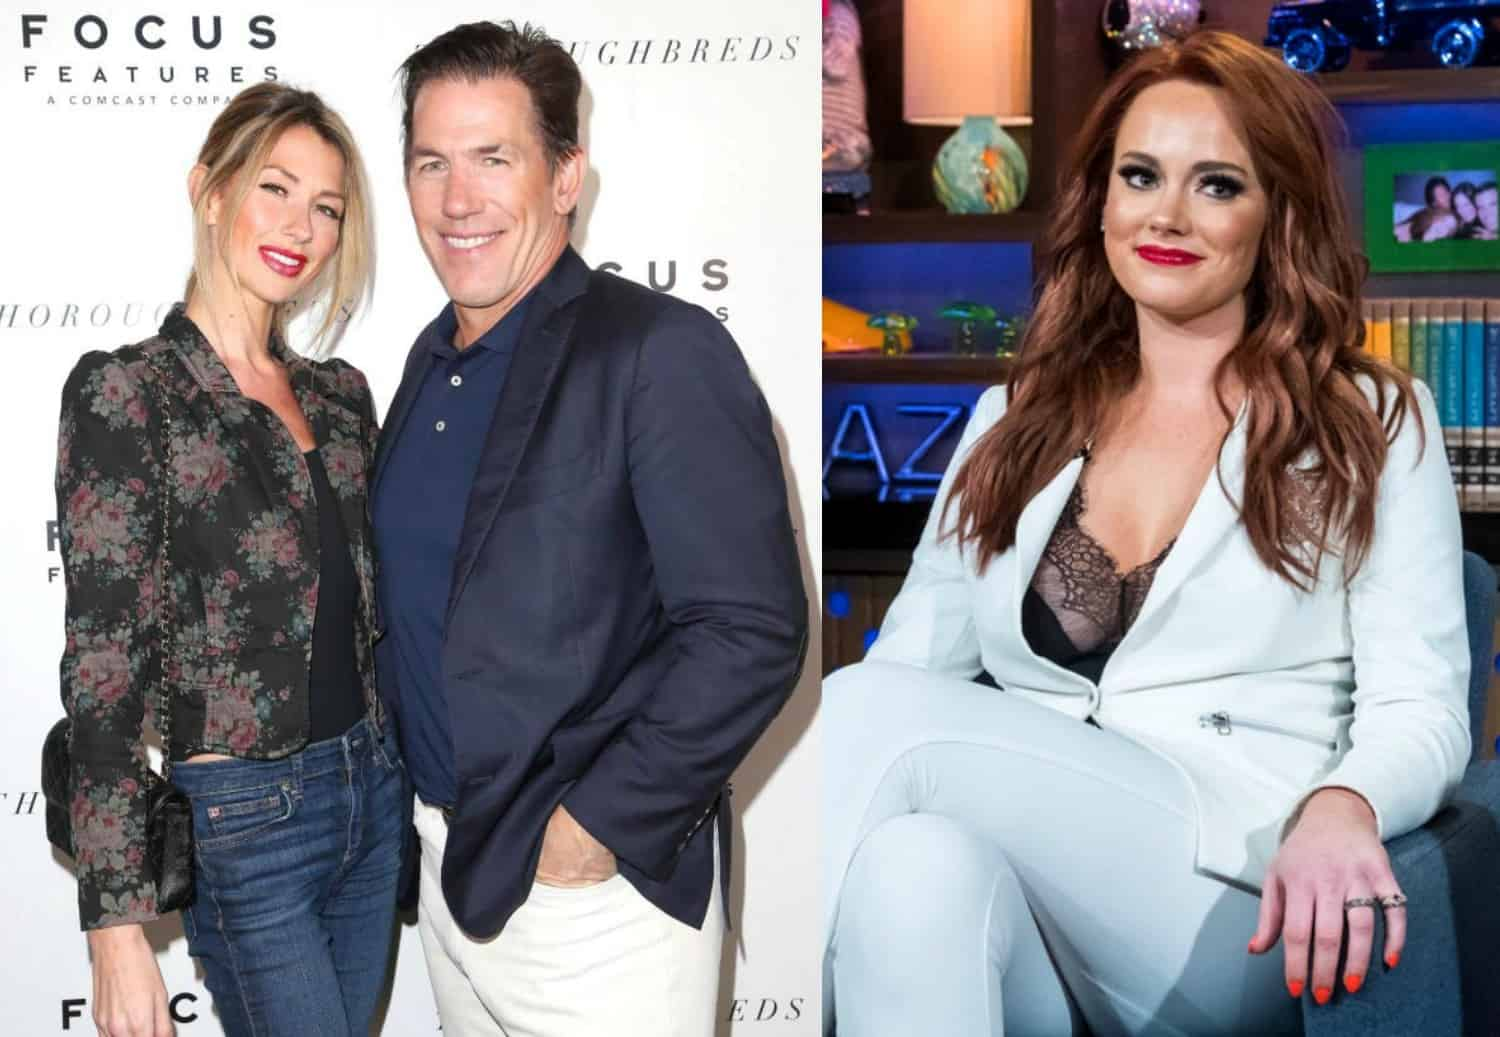 Ashley Jacobs' Former Roommate Gives Kathryn Dennis Ashley's Text Messages for Custody Case, What Do the Texts Say? Plus Ashley Reacts